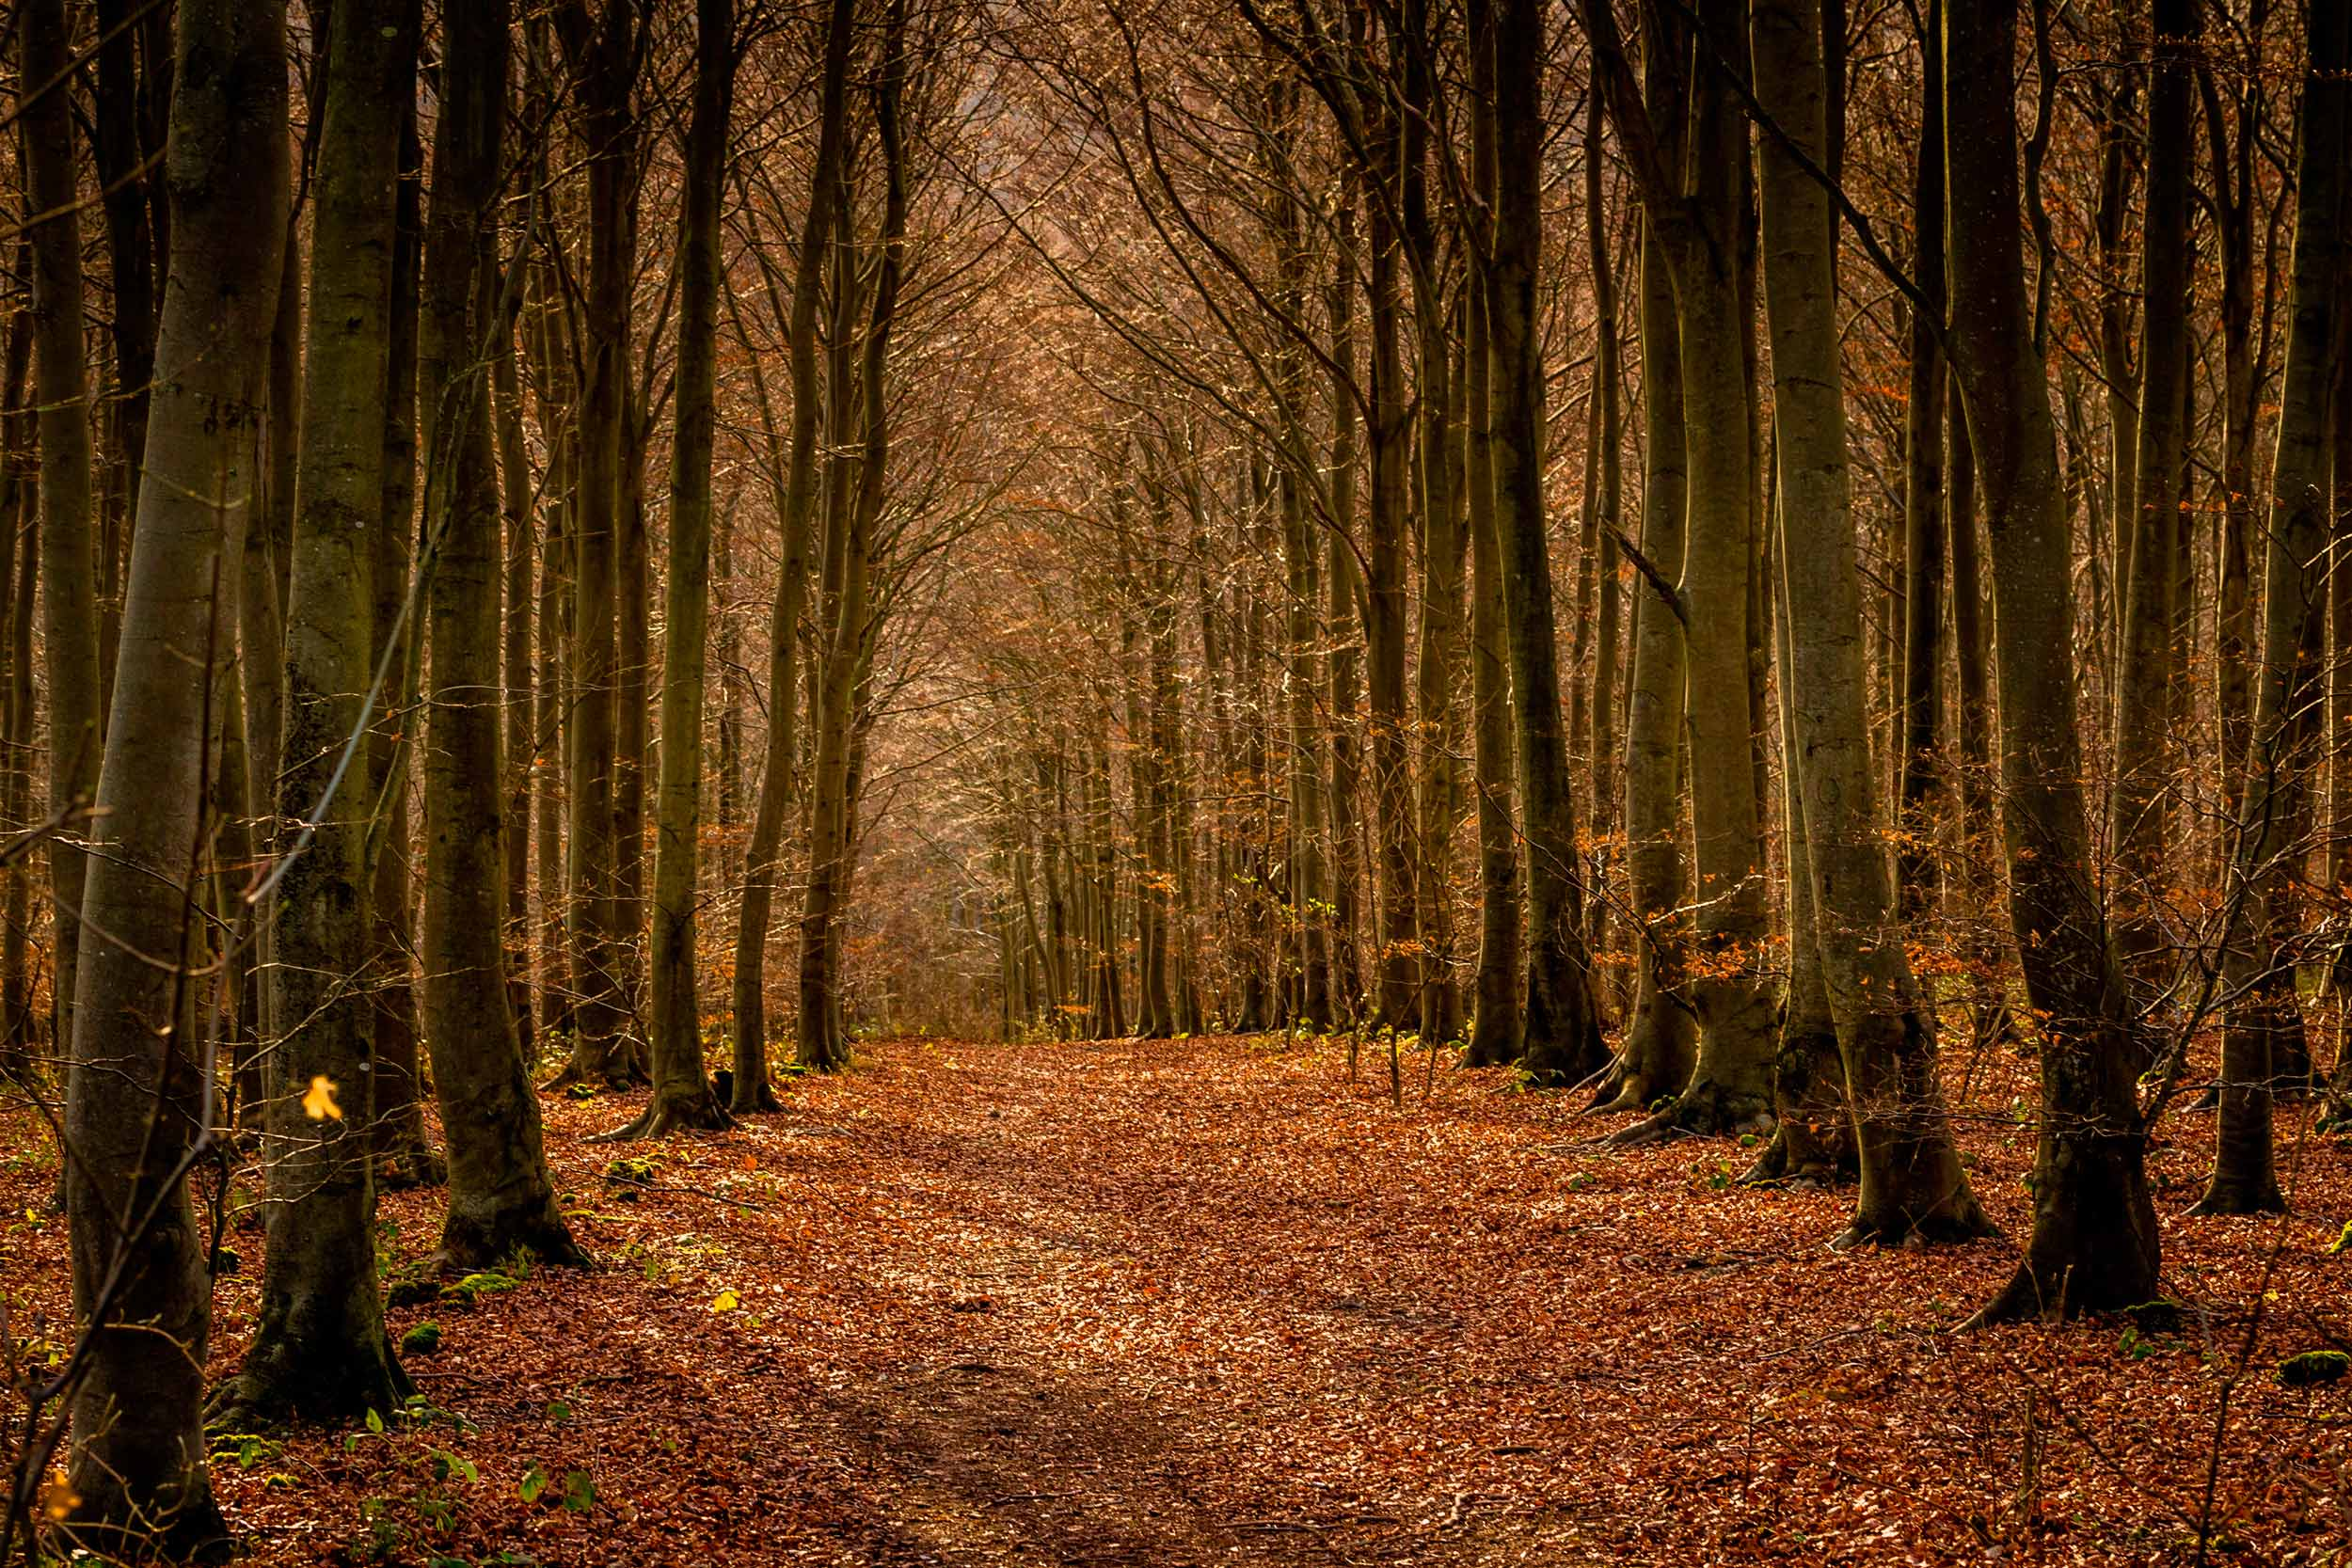 Friston Forest, South Downs  (Louise Bottomley/Shutterstock)